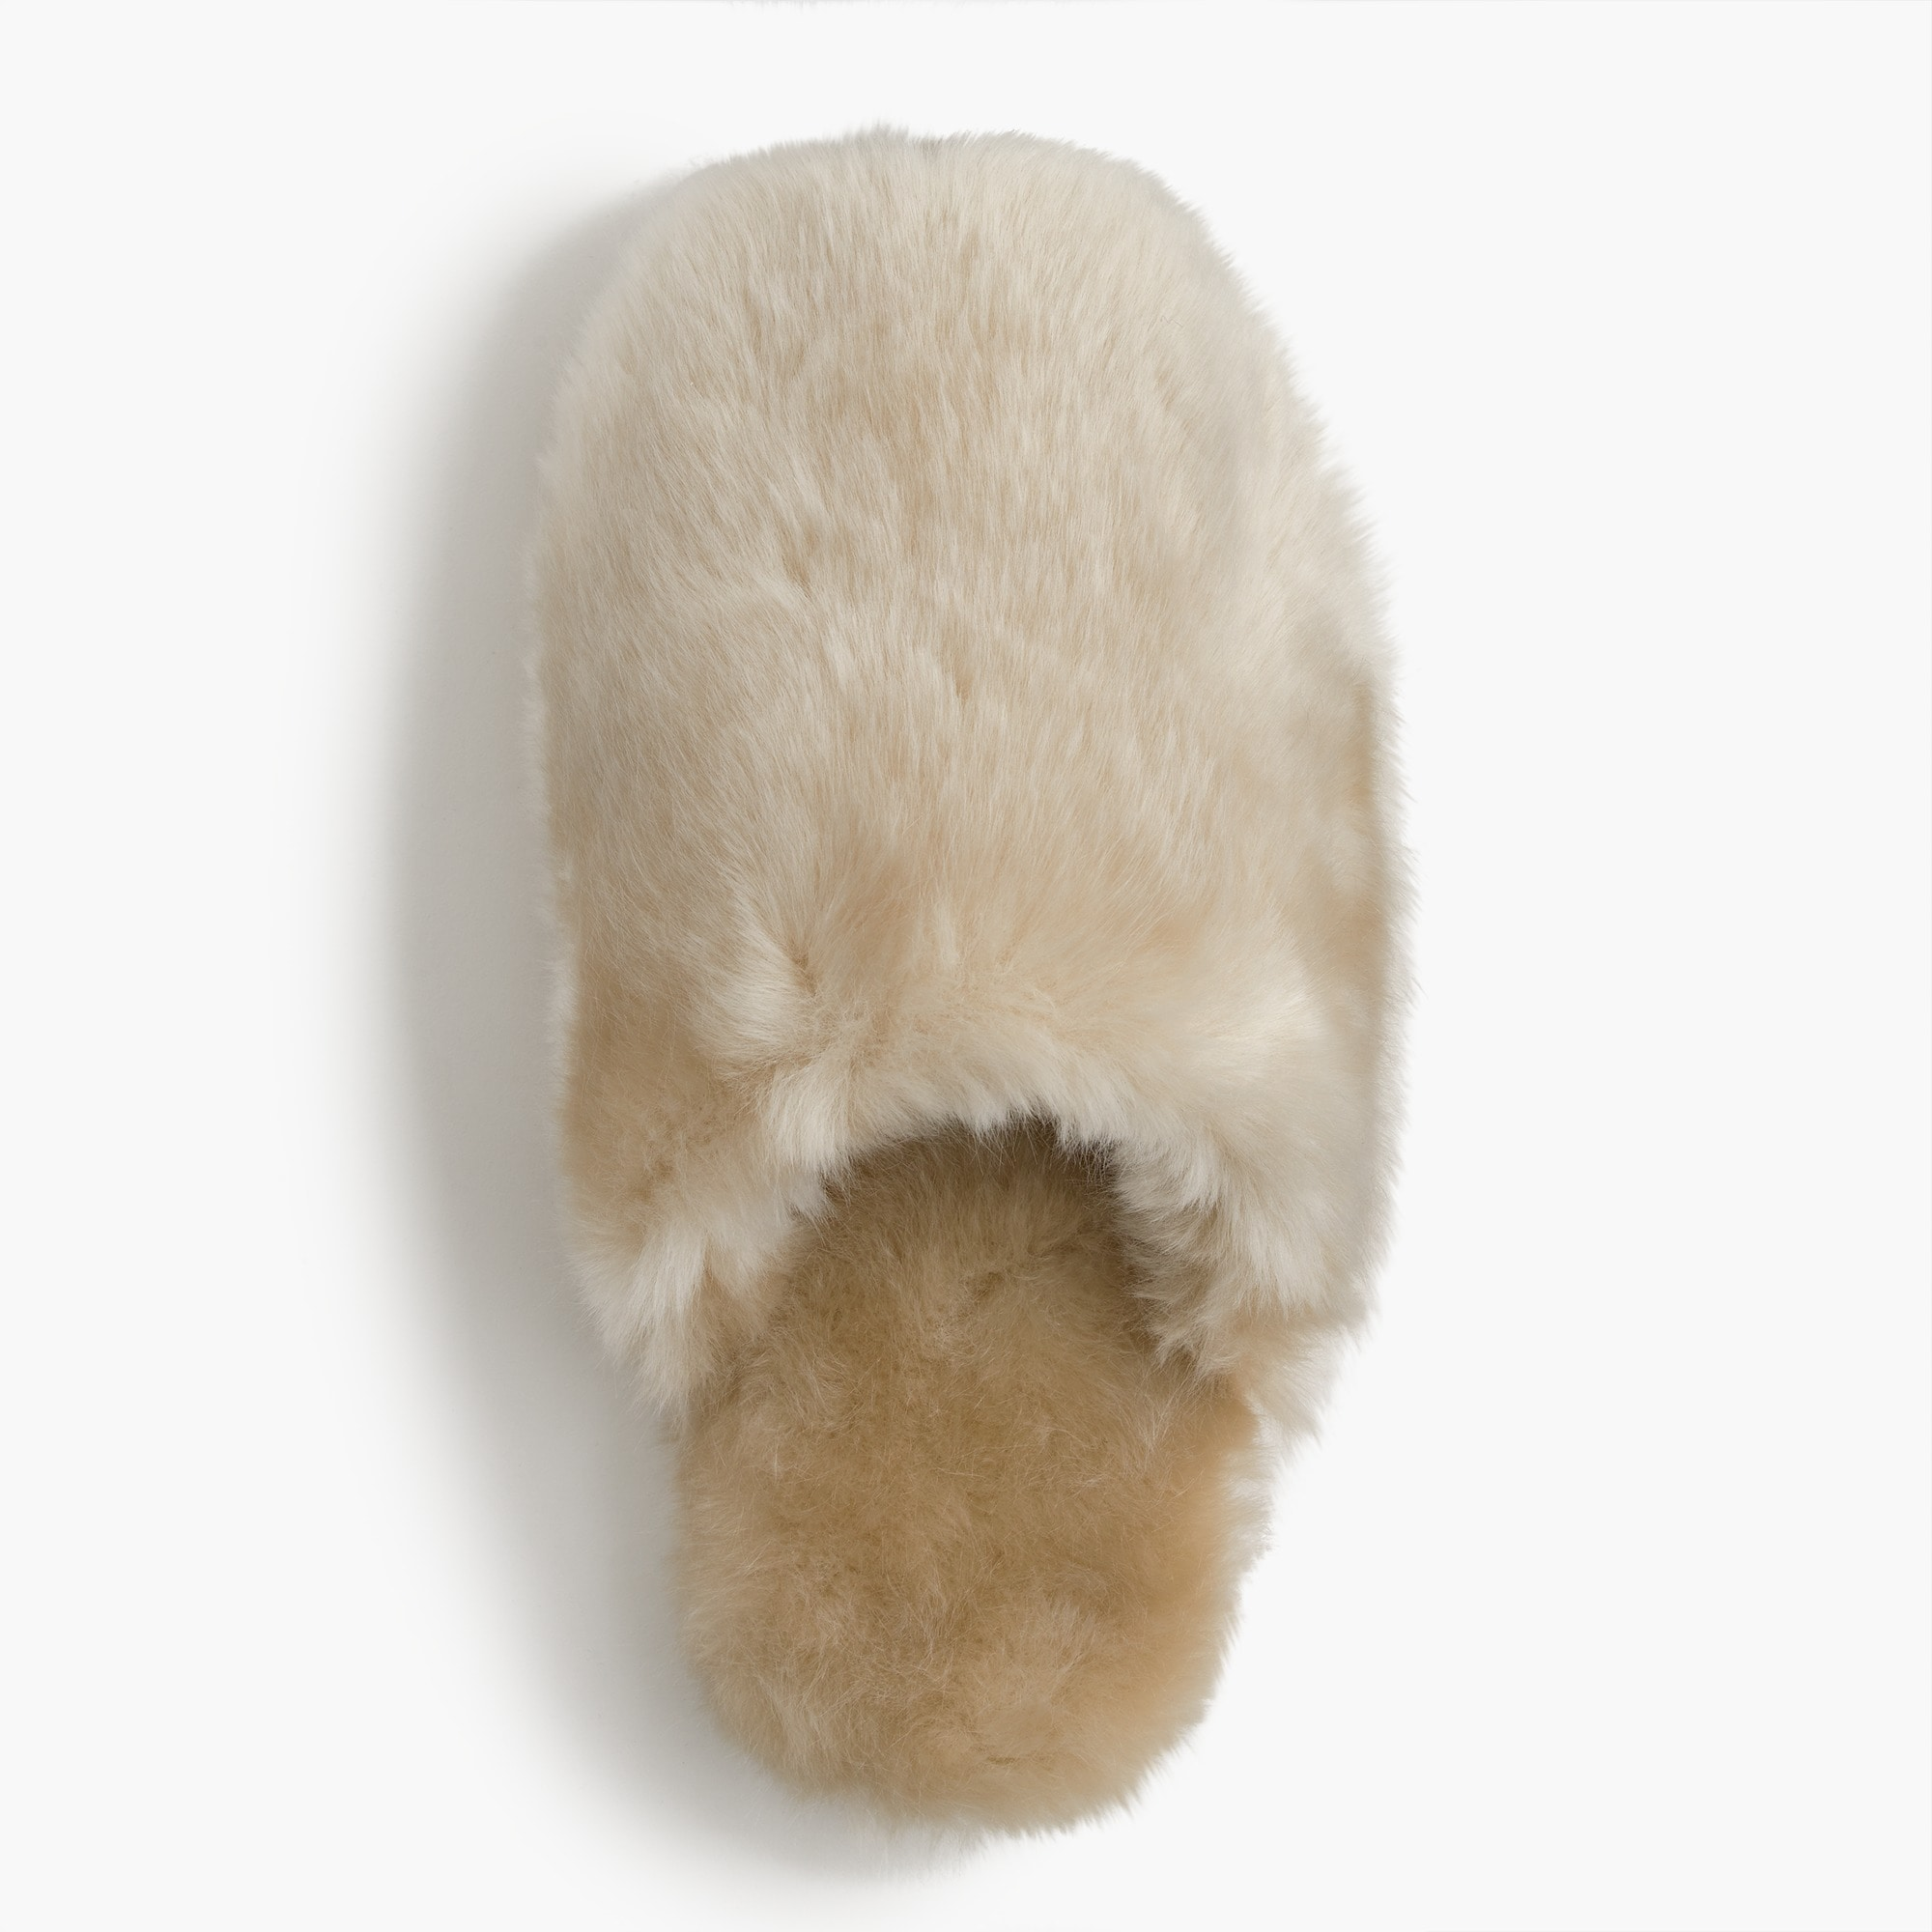 Image 1 for Fuzzy slippers